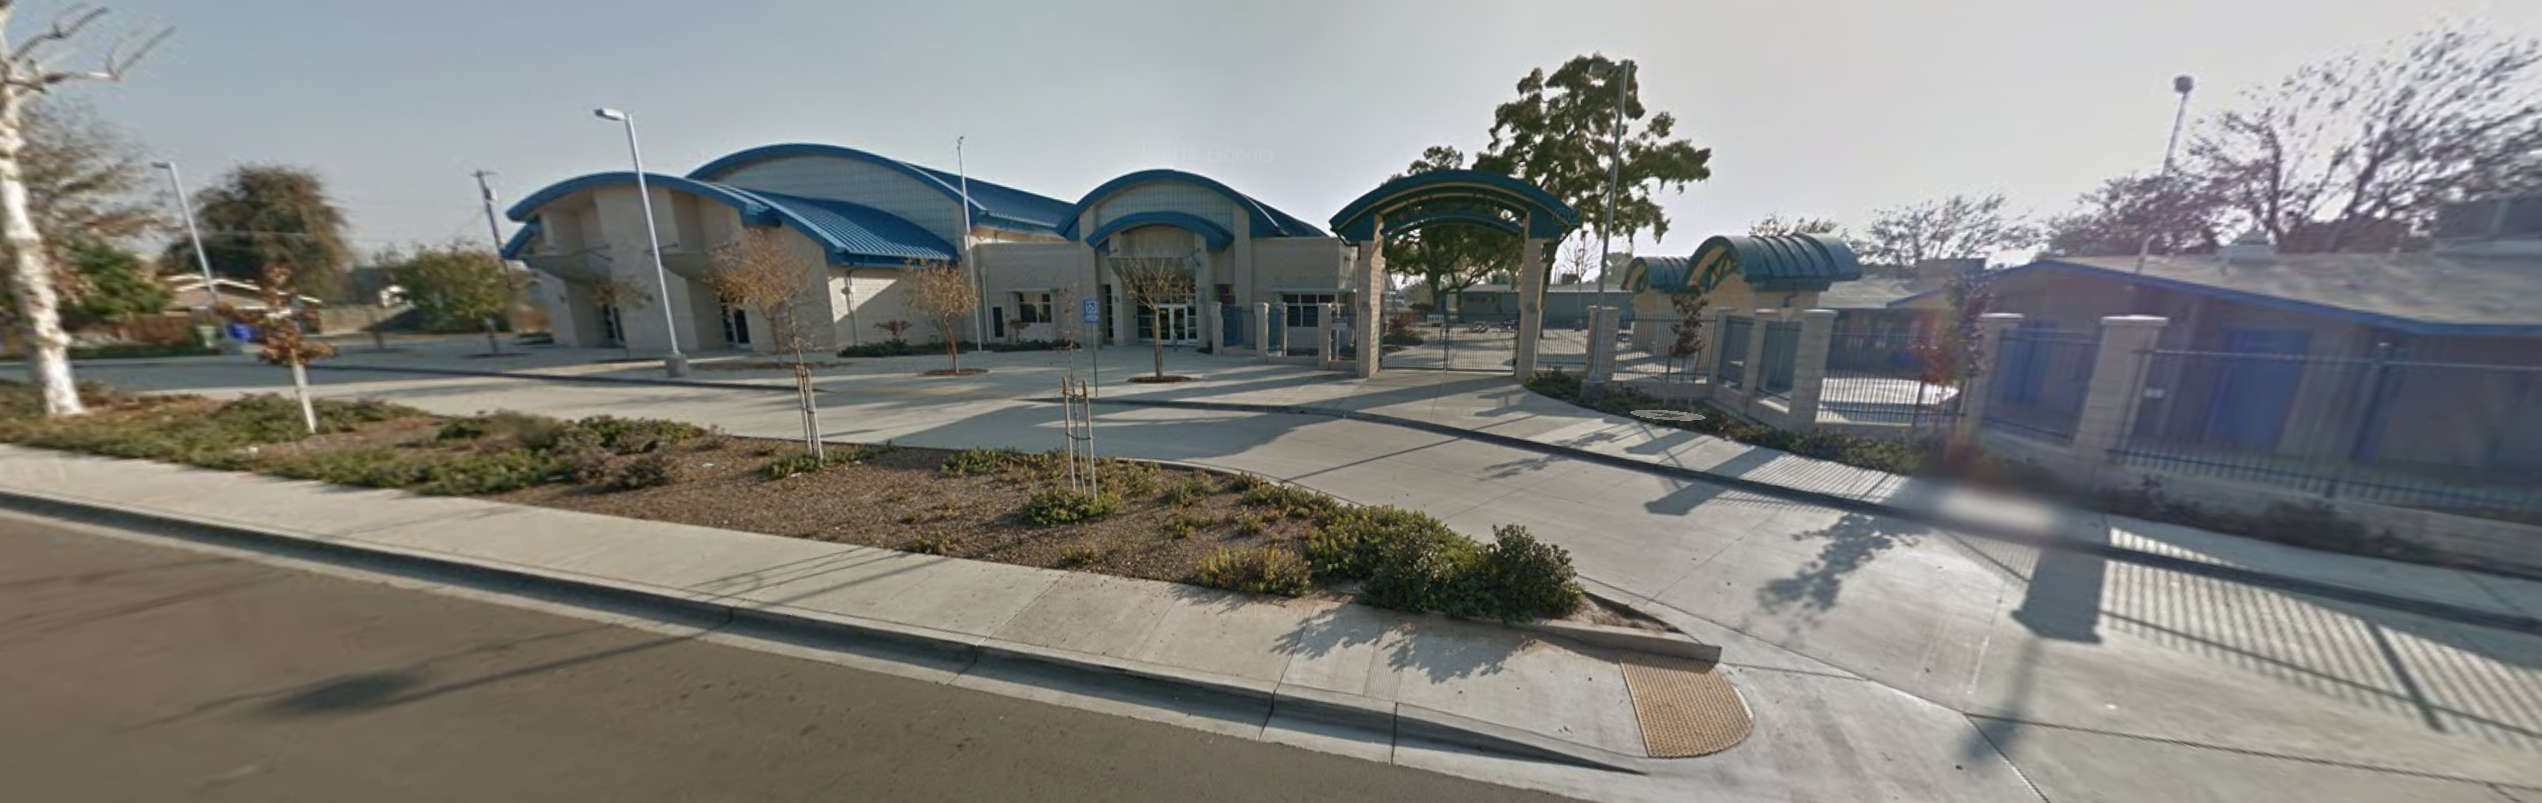 City Of Exeter Ca Building Department